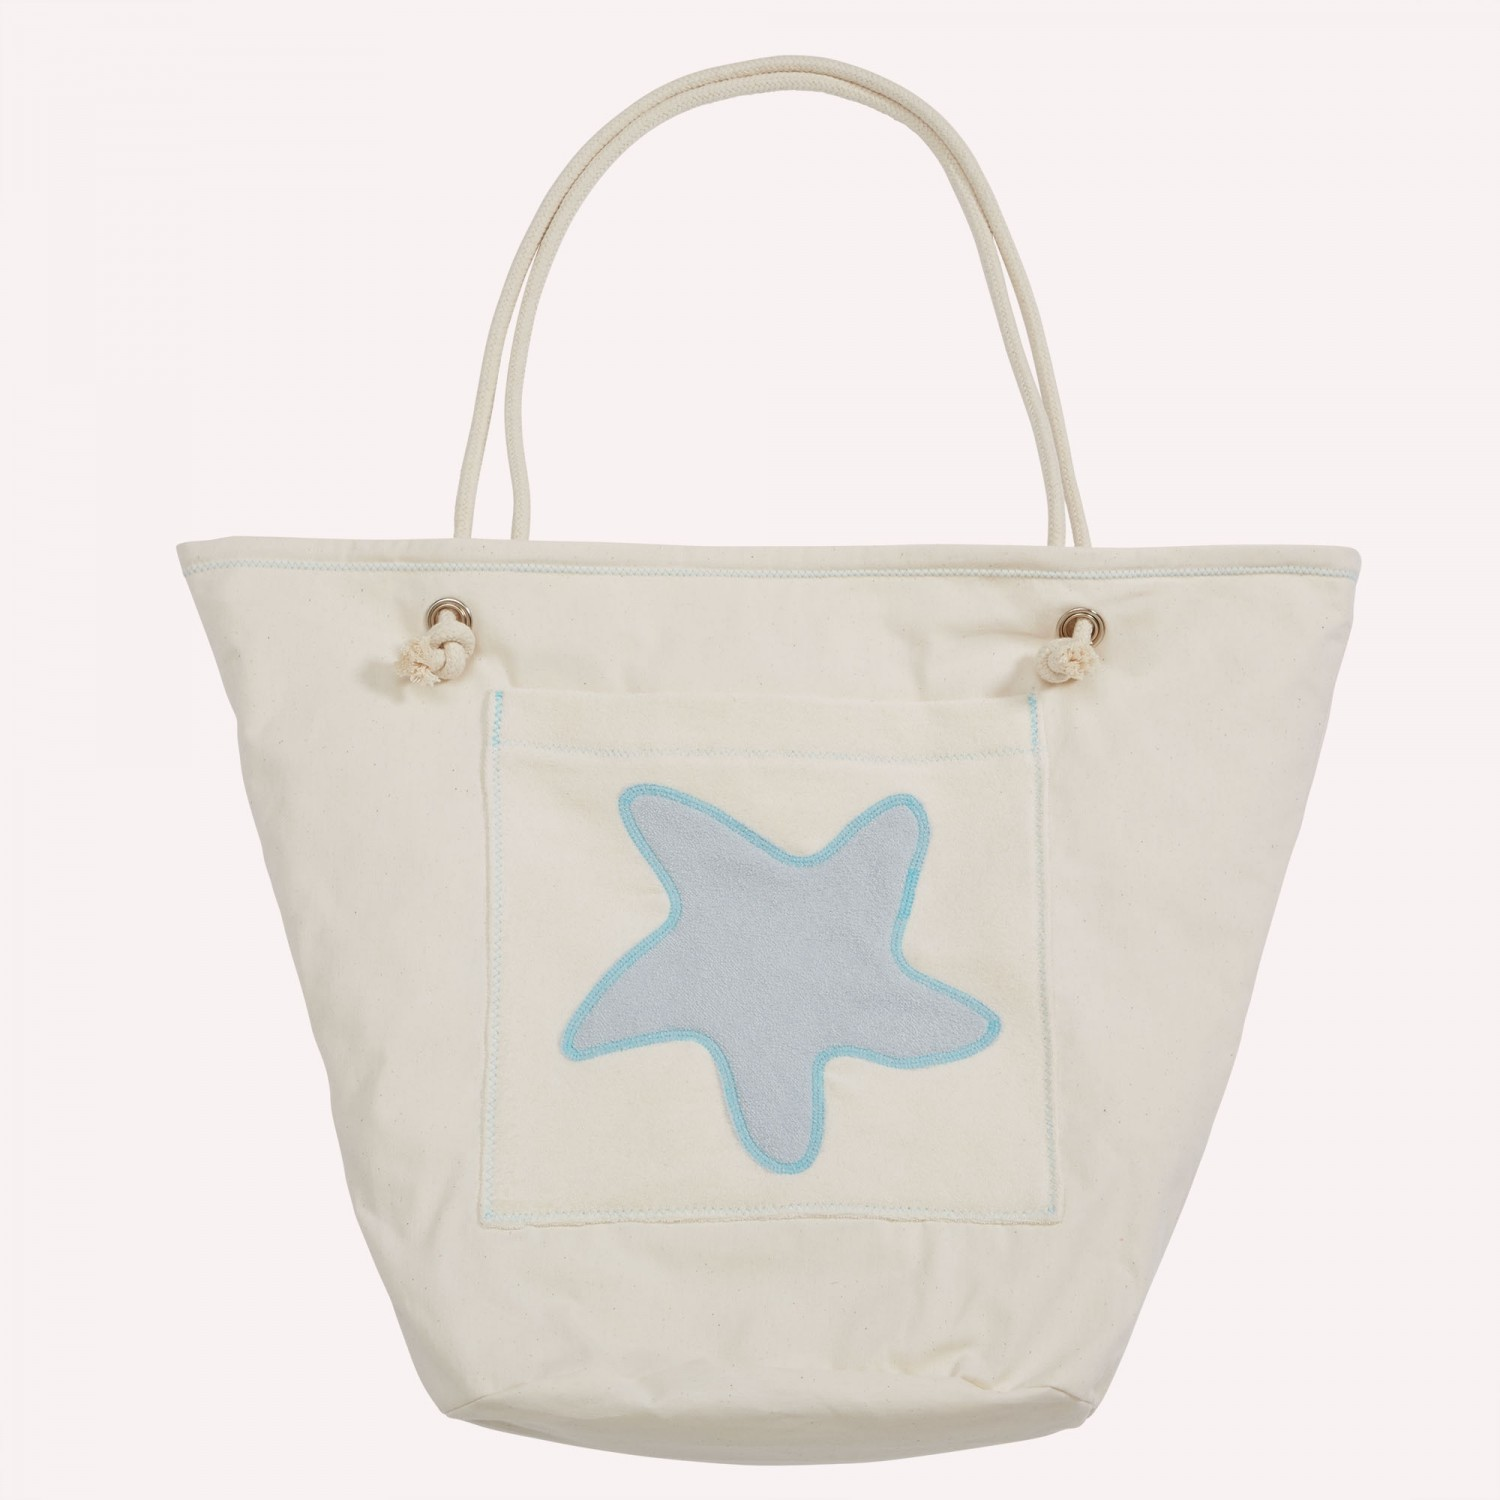 early fish Eco Beach Bag, Light Grey, with Starfish, Light Grey, Organic Cotton